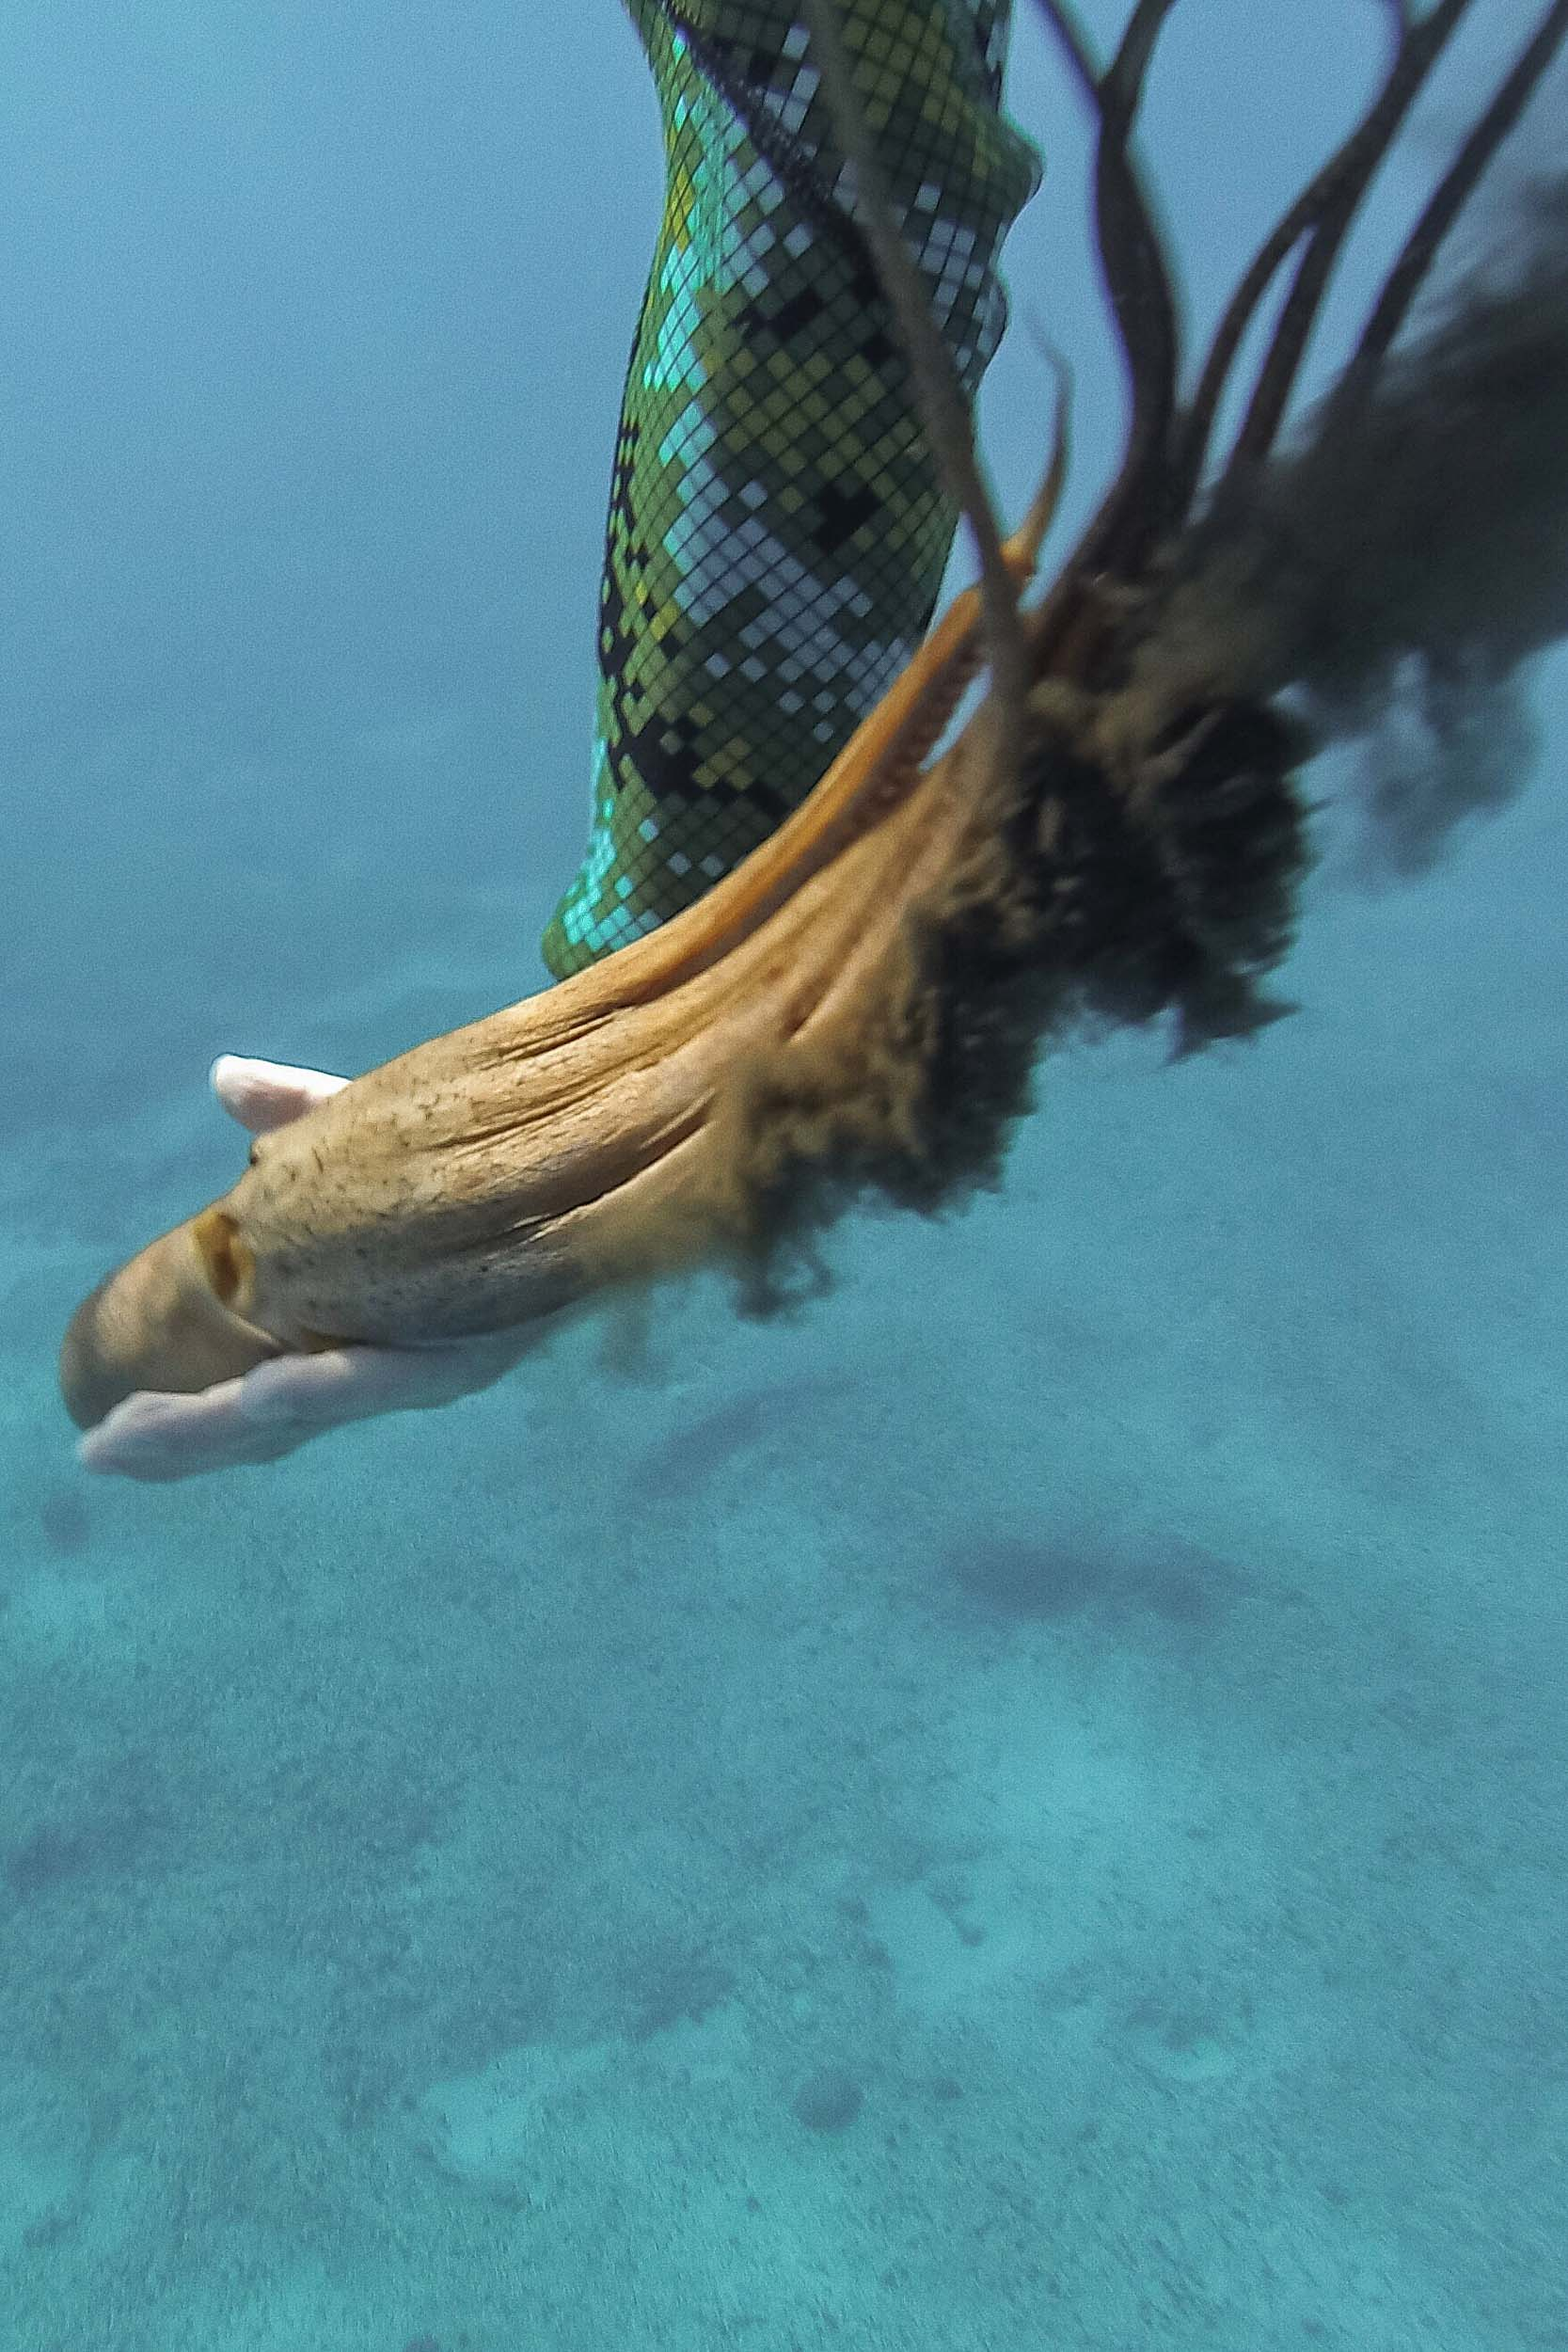 A squid we found in the ocean while swimming with dolphins in the wild in Hawaii